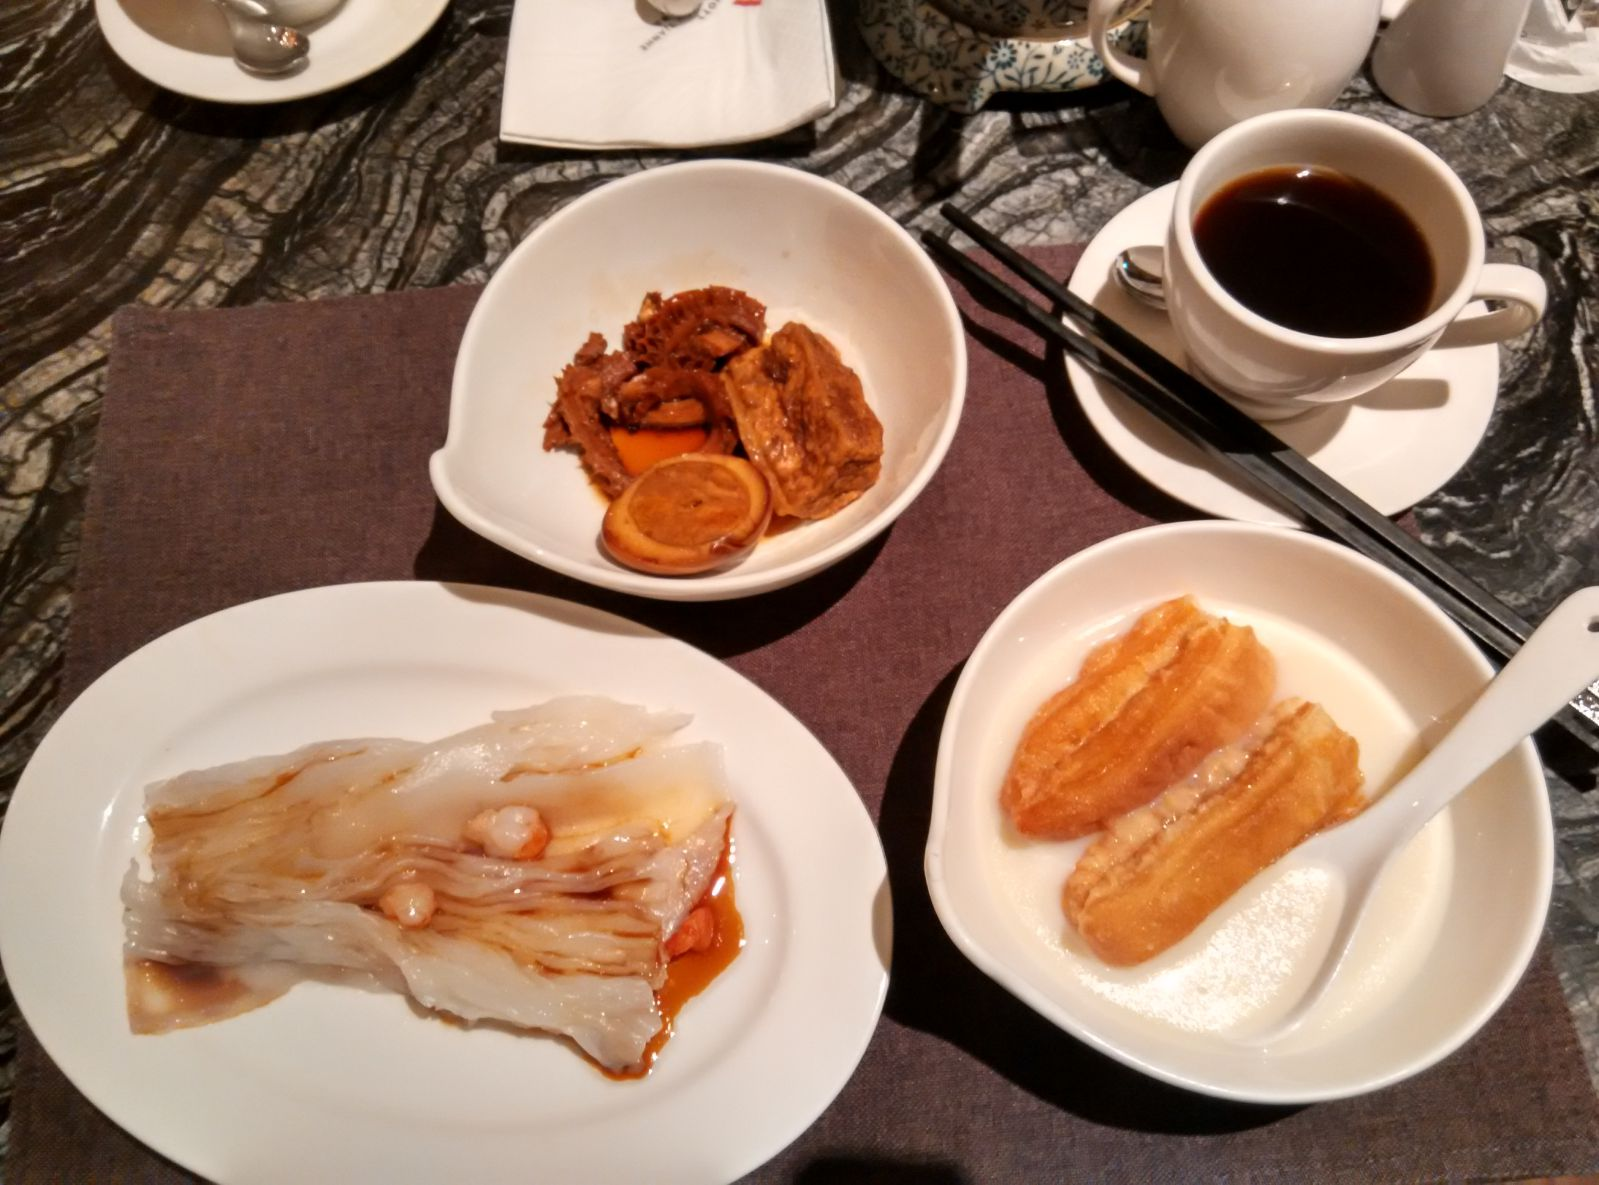 guangzhou-marriott-tianhe-breakfast-5